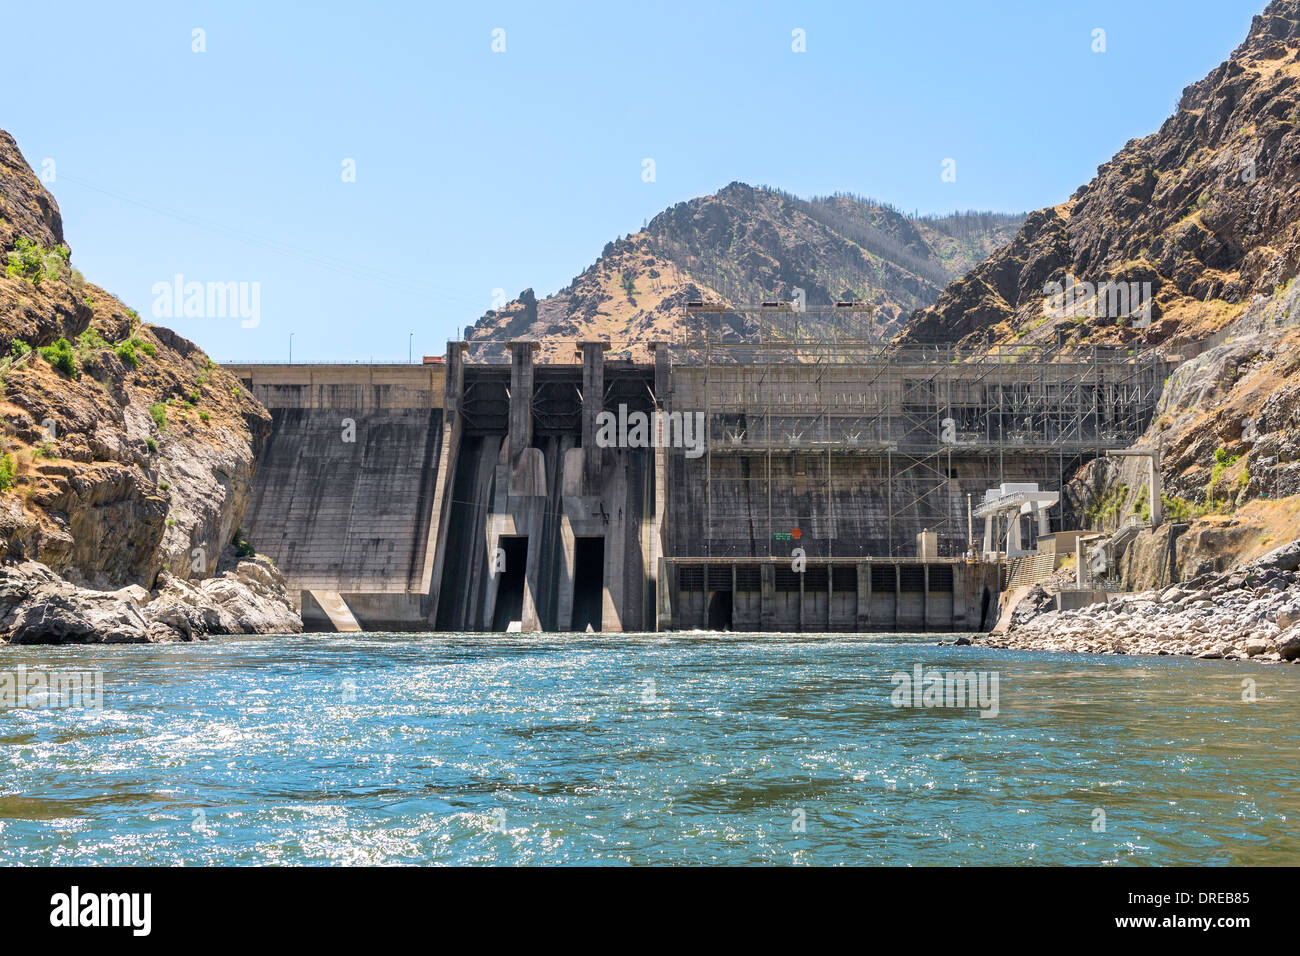 Hells Canyon Dam in Hells Canyon, on the Snake River, forming the border between Idaho and Oregon, USA. - Stock Image